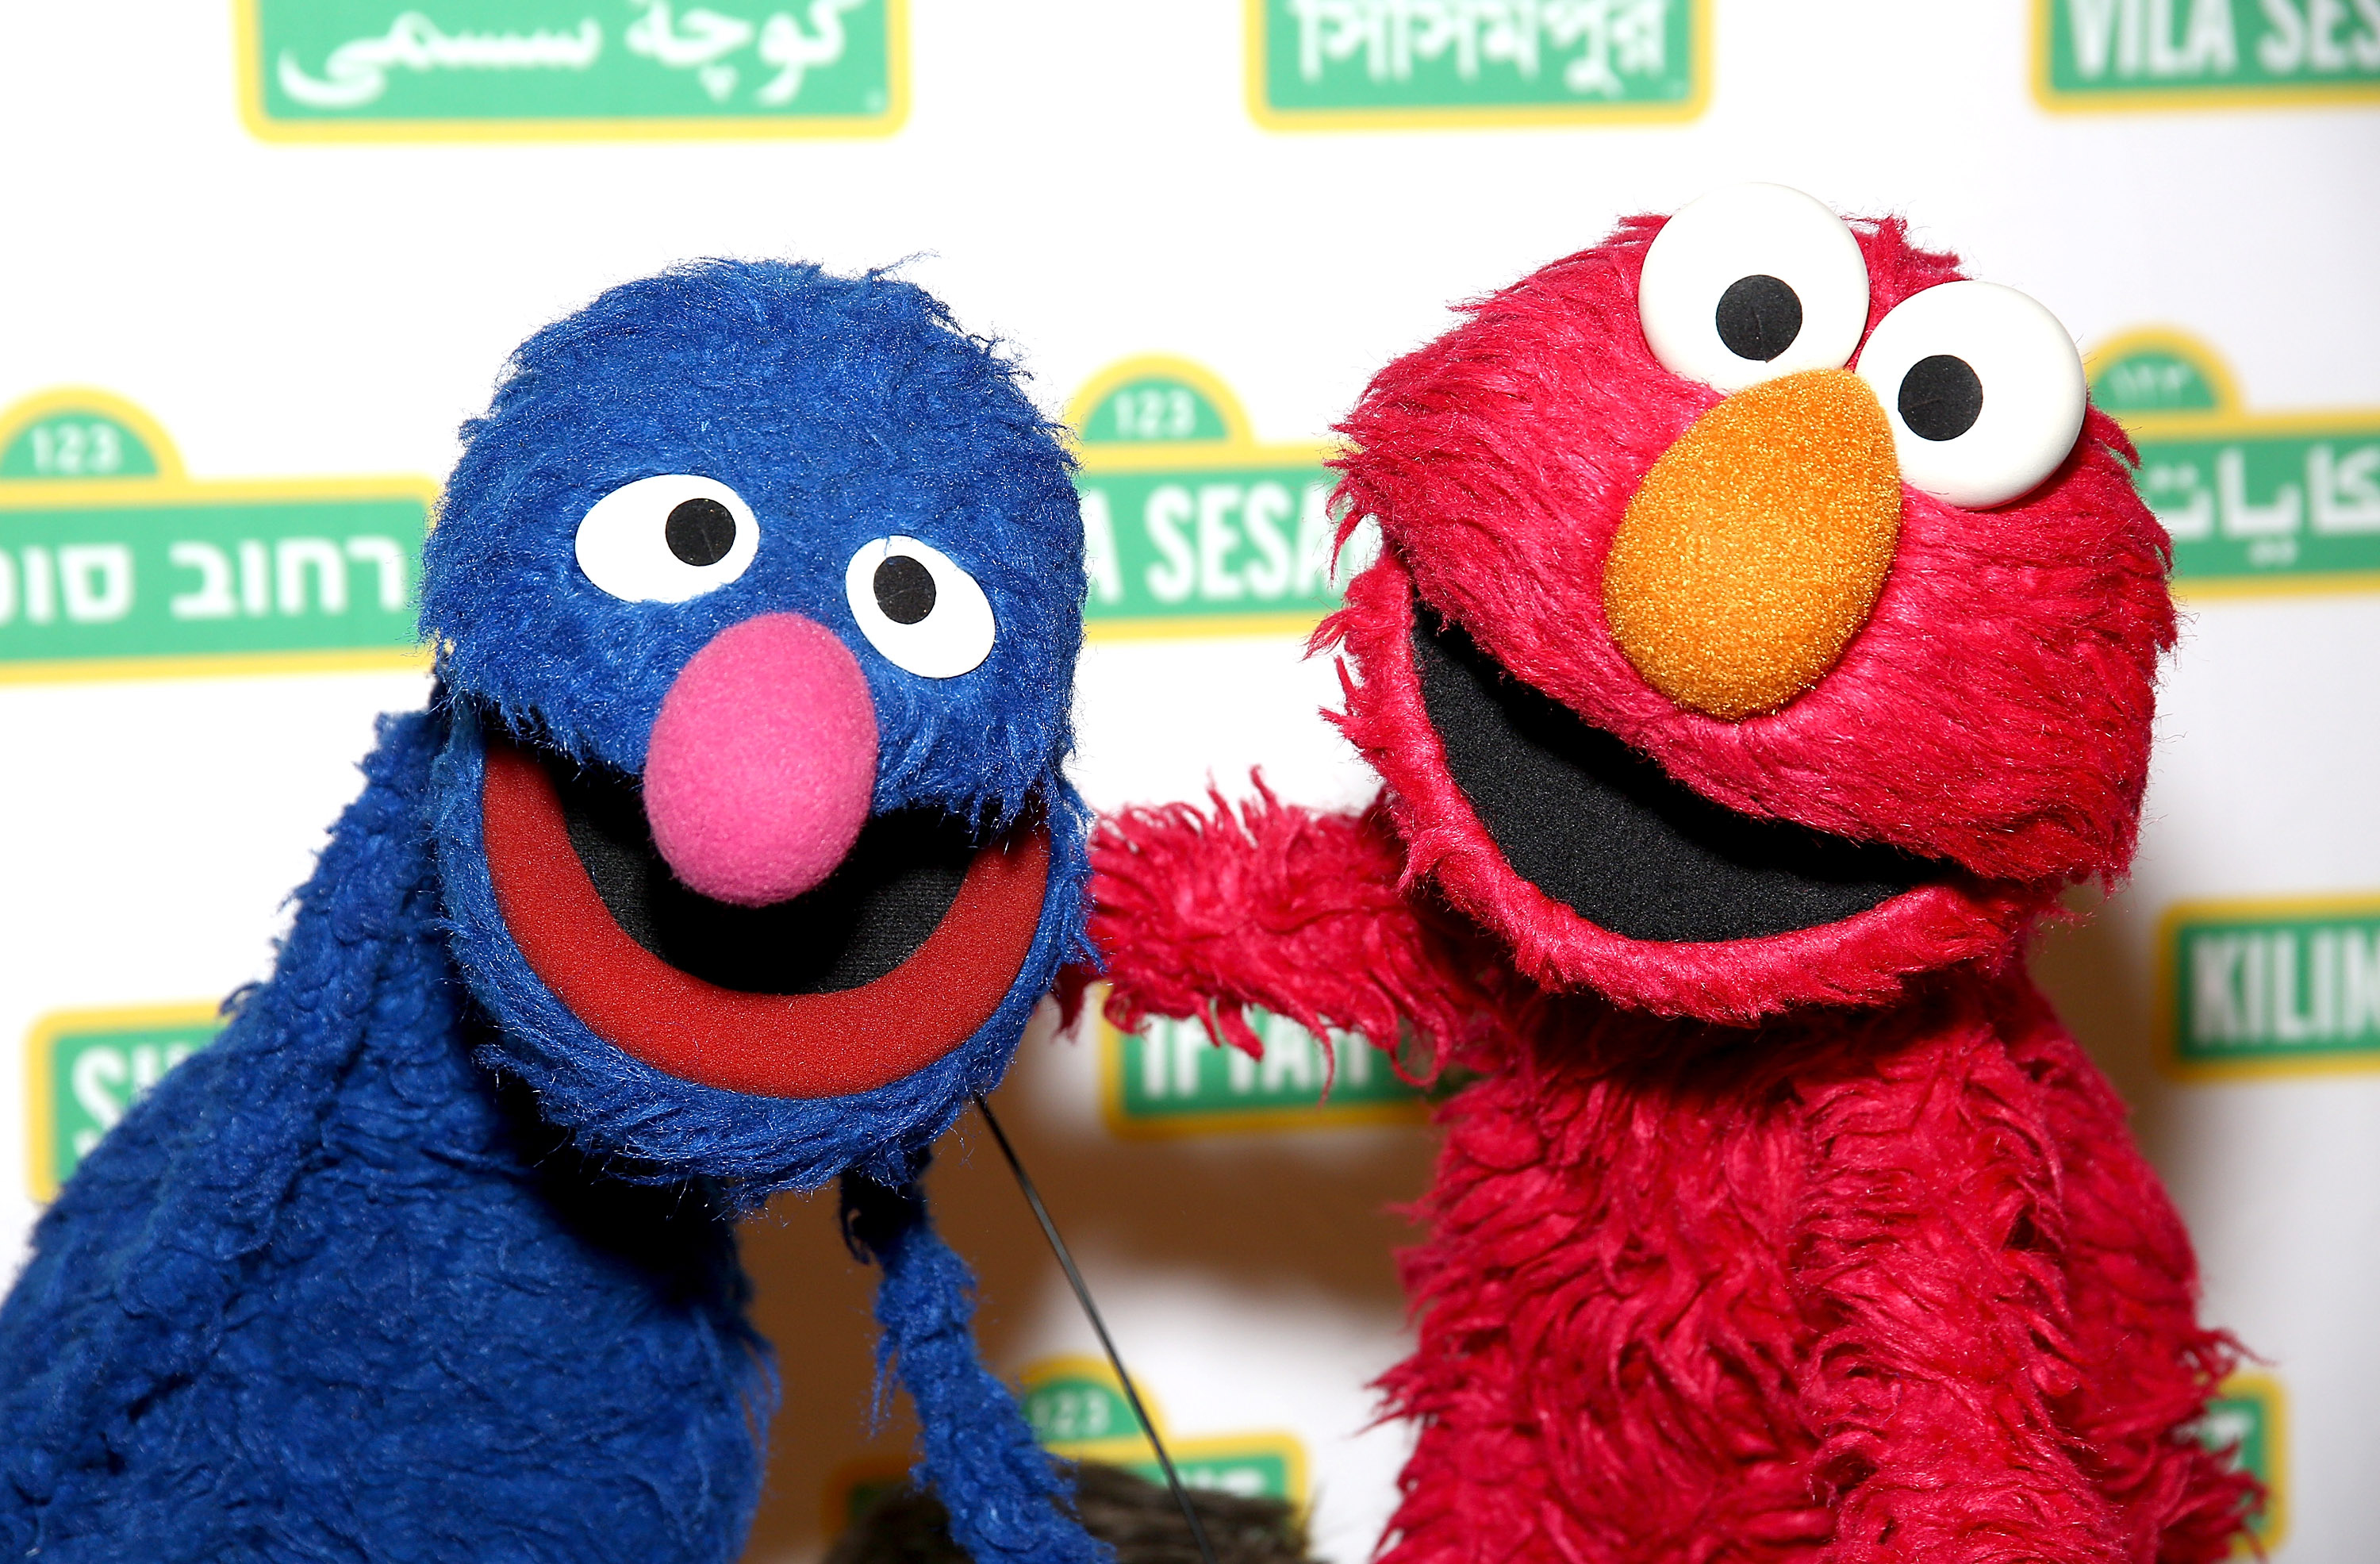 Sesame Street Muppets 'Grover' and 'Elmo' attend the Sesame Workshop's 13th Annual Benefit Gala at Cipriani 42nd Street on May 27, 2015 in New York City.